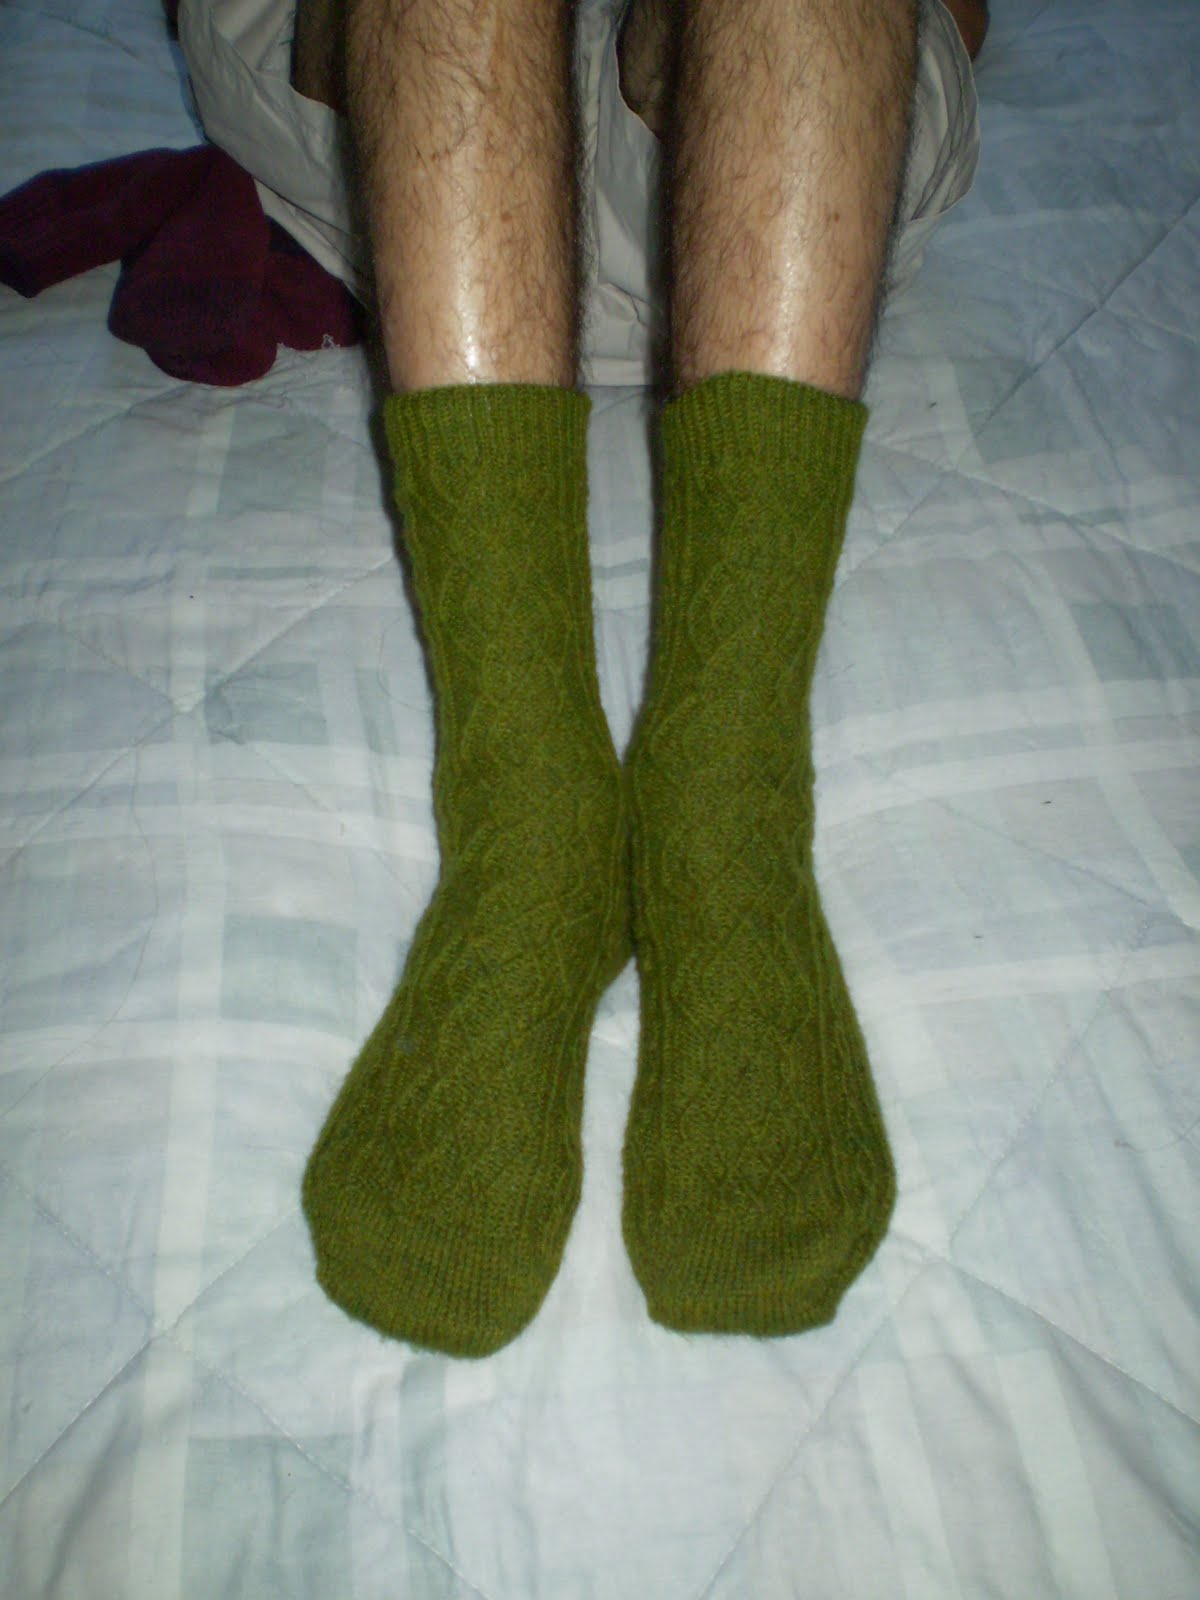 Knitting Cowgirls: Richards Aran Socks